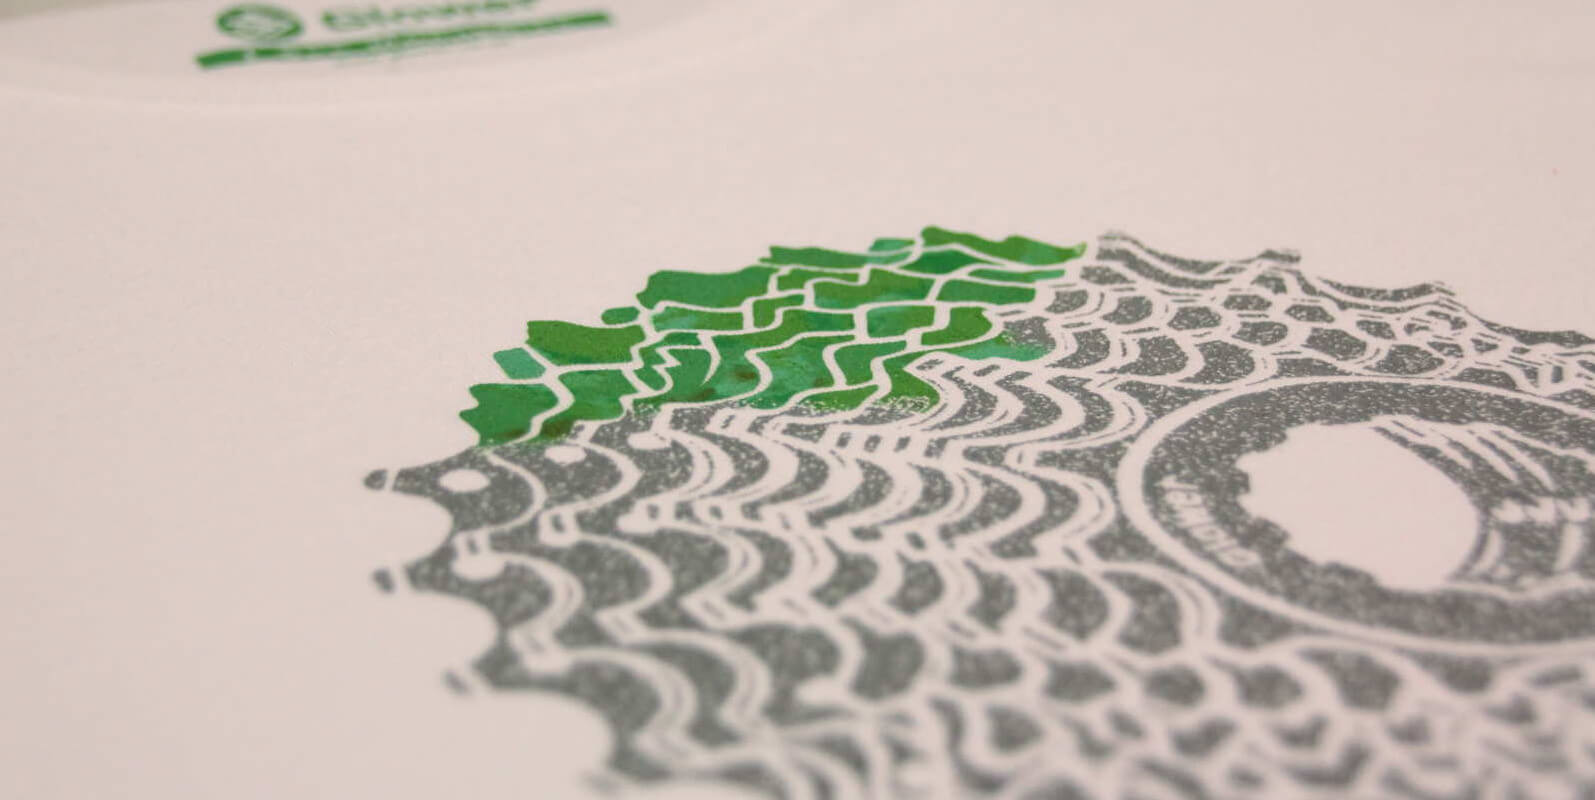 Mountain bike tshirts printed in Glower shop